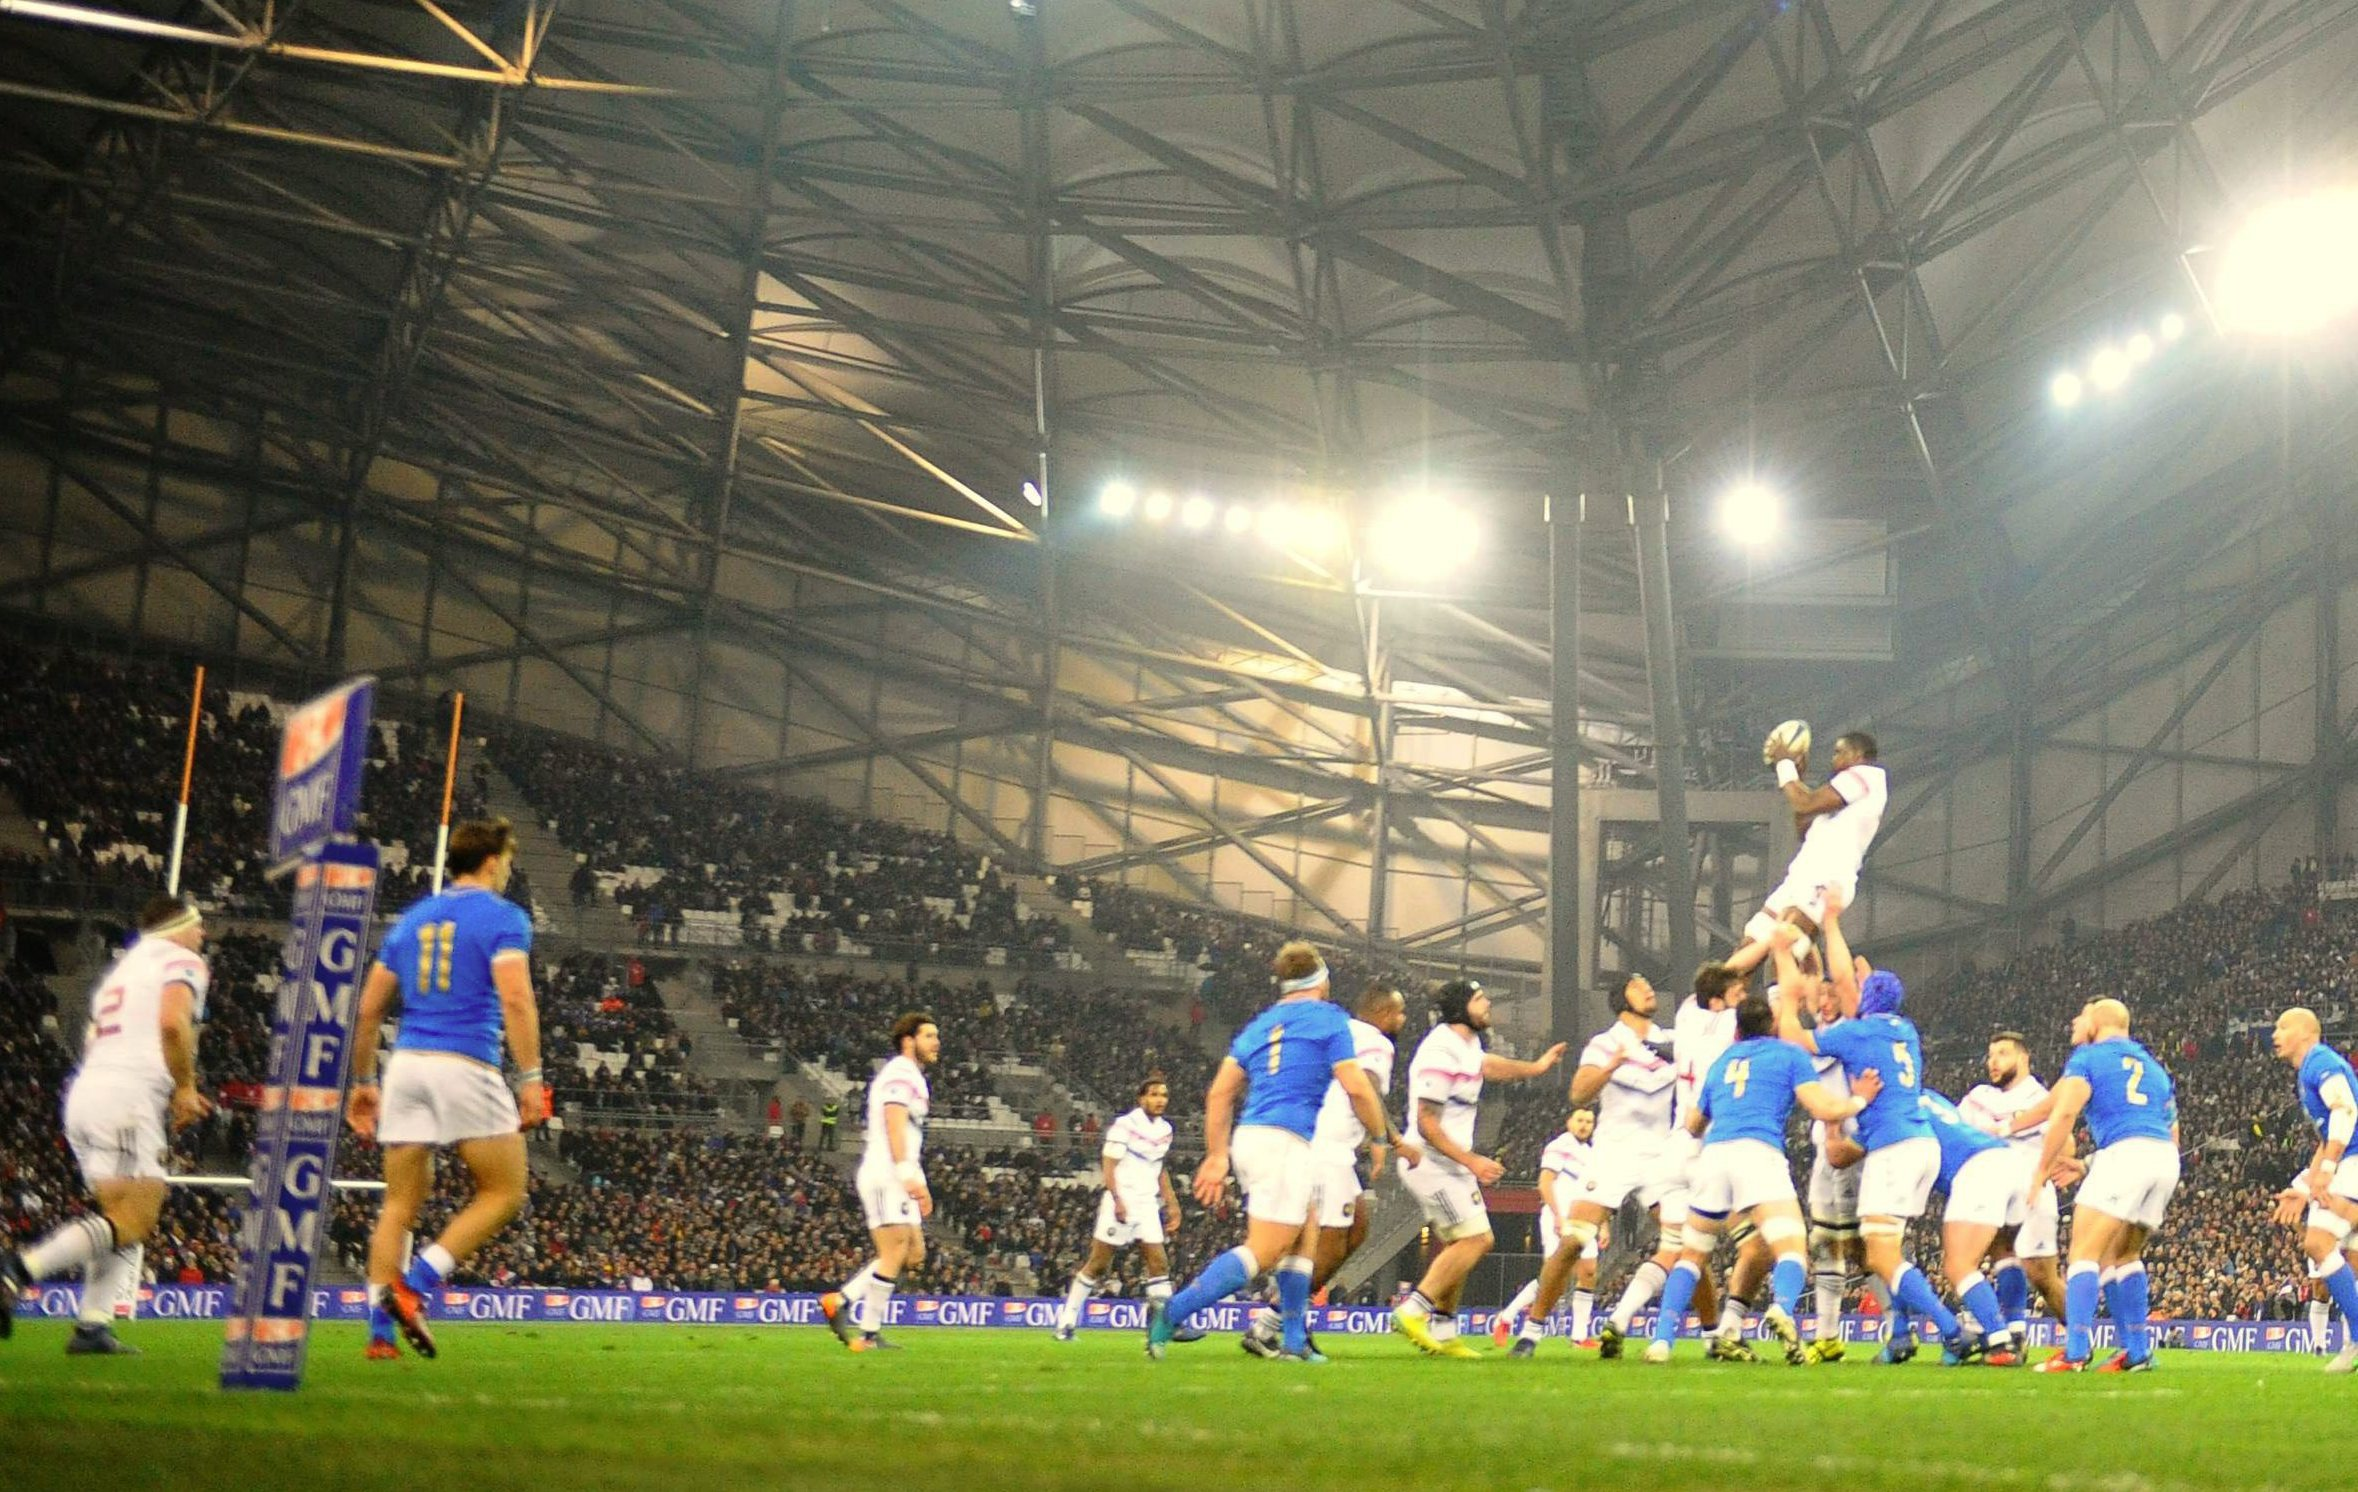 Rugby le stade v lodrome accueillera les finales de coupe d europe en 2020 coupes d 39 europe - Resultats rugby coupe d europe ...